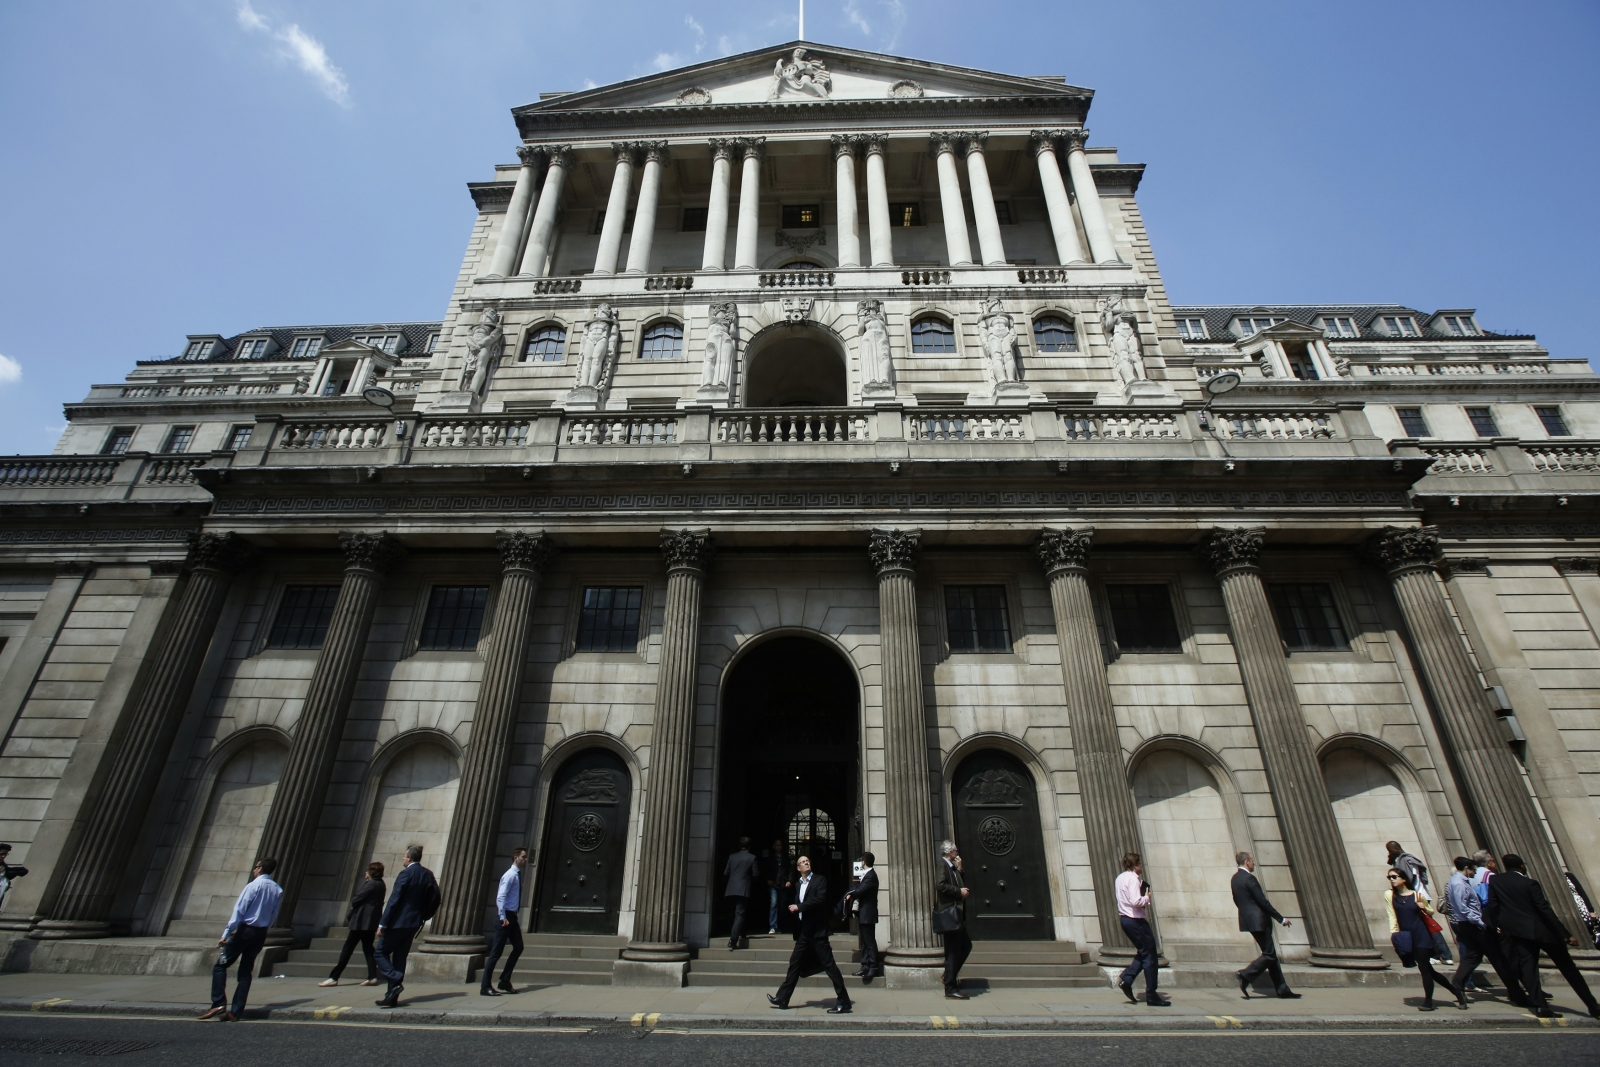 Bank of England begins monitoring internet and social networks for unconventional economic data